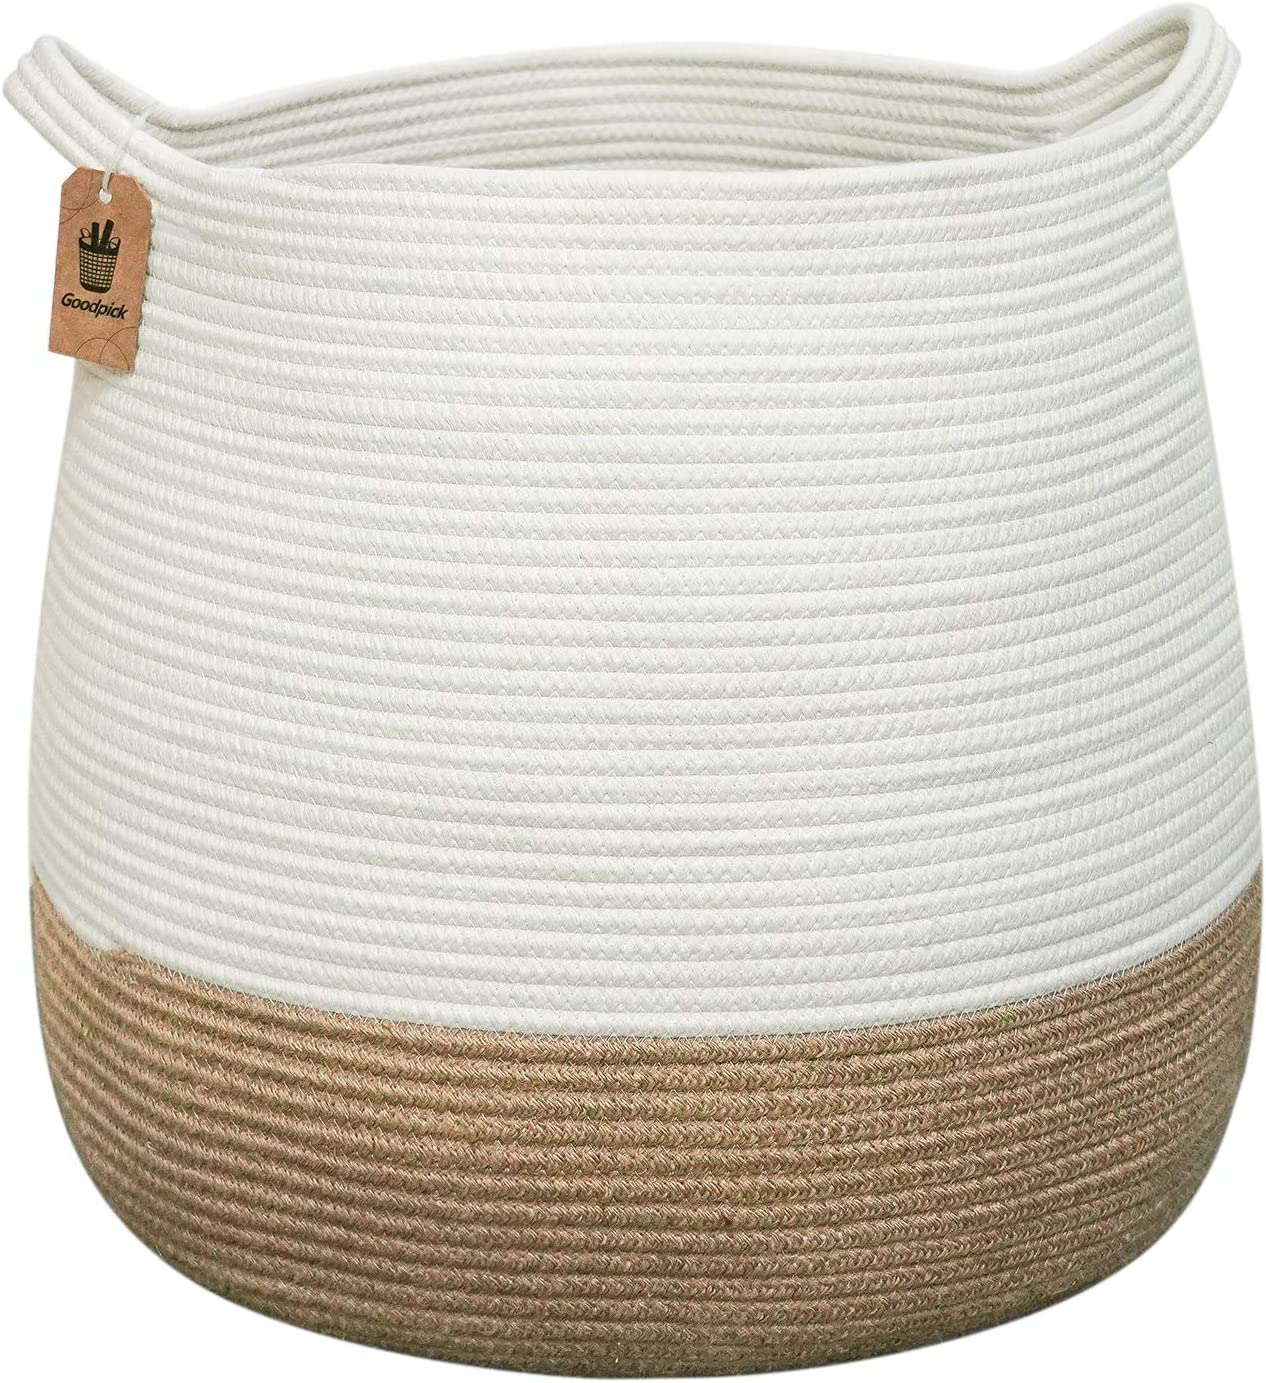 "Goodpick Wicker Laundry Basket | 17.71"" x 17.71""Cute Round Woven Rope Basket Natural 